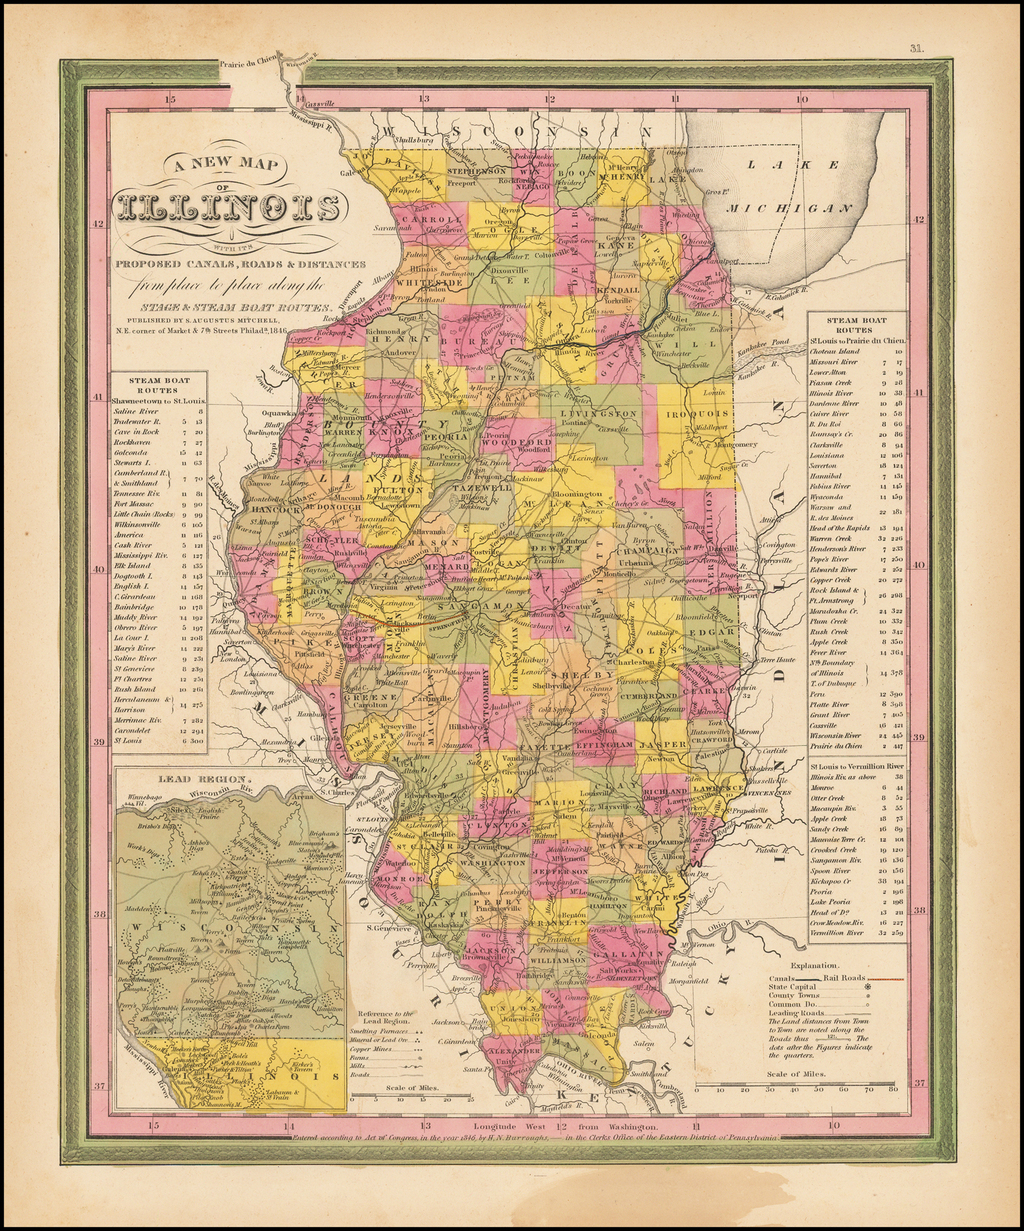 A New Map of Illinois with its Canals, Roads, Distances from Place to Place, along the Stage & Steam Boat Routes By Samuel Augustus Mitchell